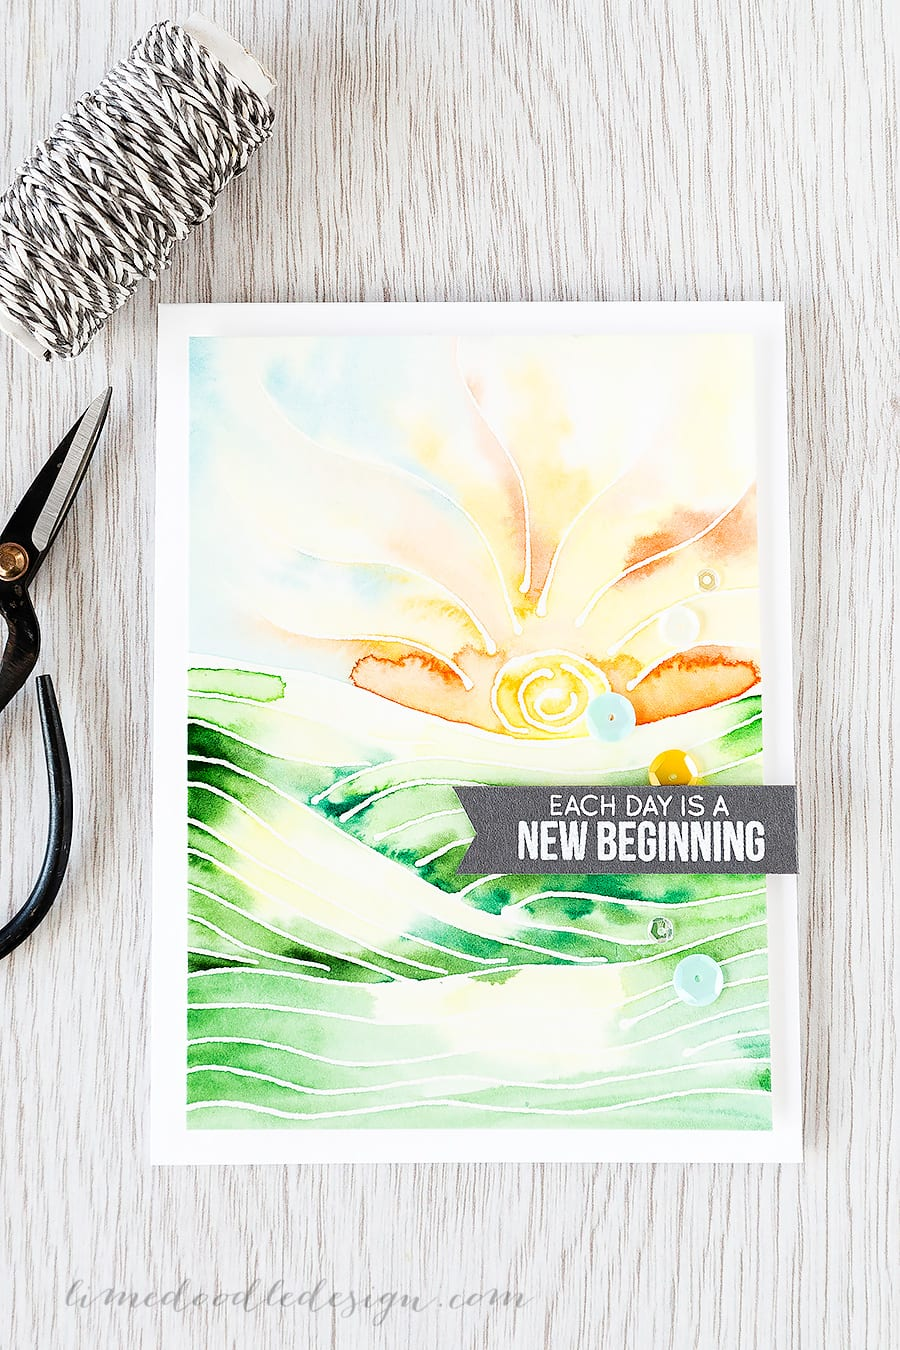 drawing with masking fluid - Debby Hughes - Lime Doodle Design https://limedoodledesign.com/2015/05/drawing-with-masking-fluid/ #masking #fluid #frisket #rubber #cement #sunrise #new #day